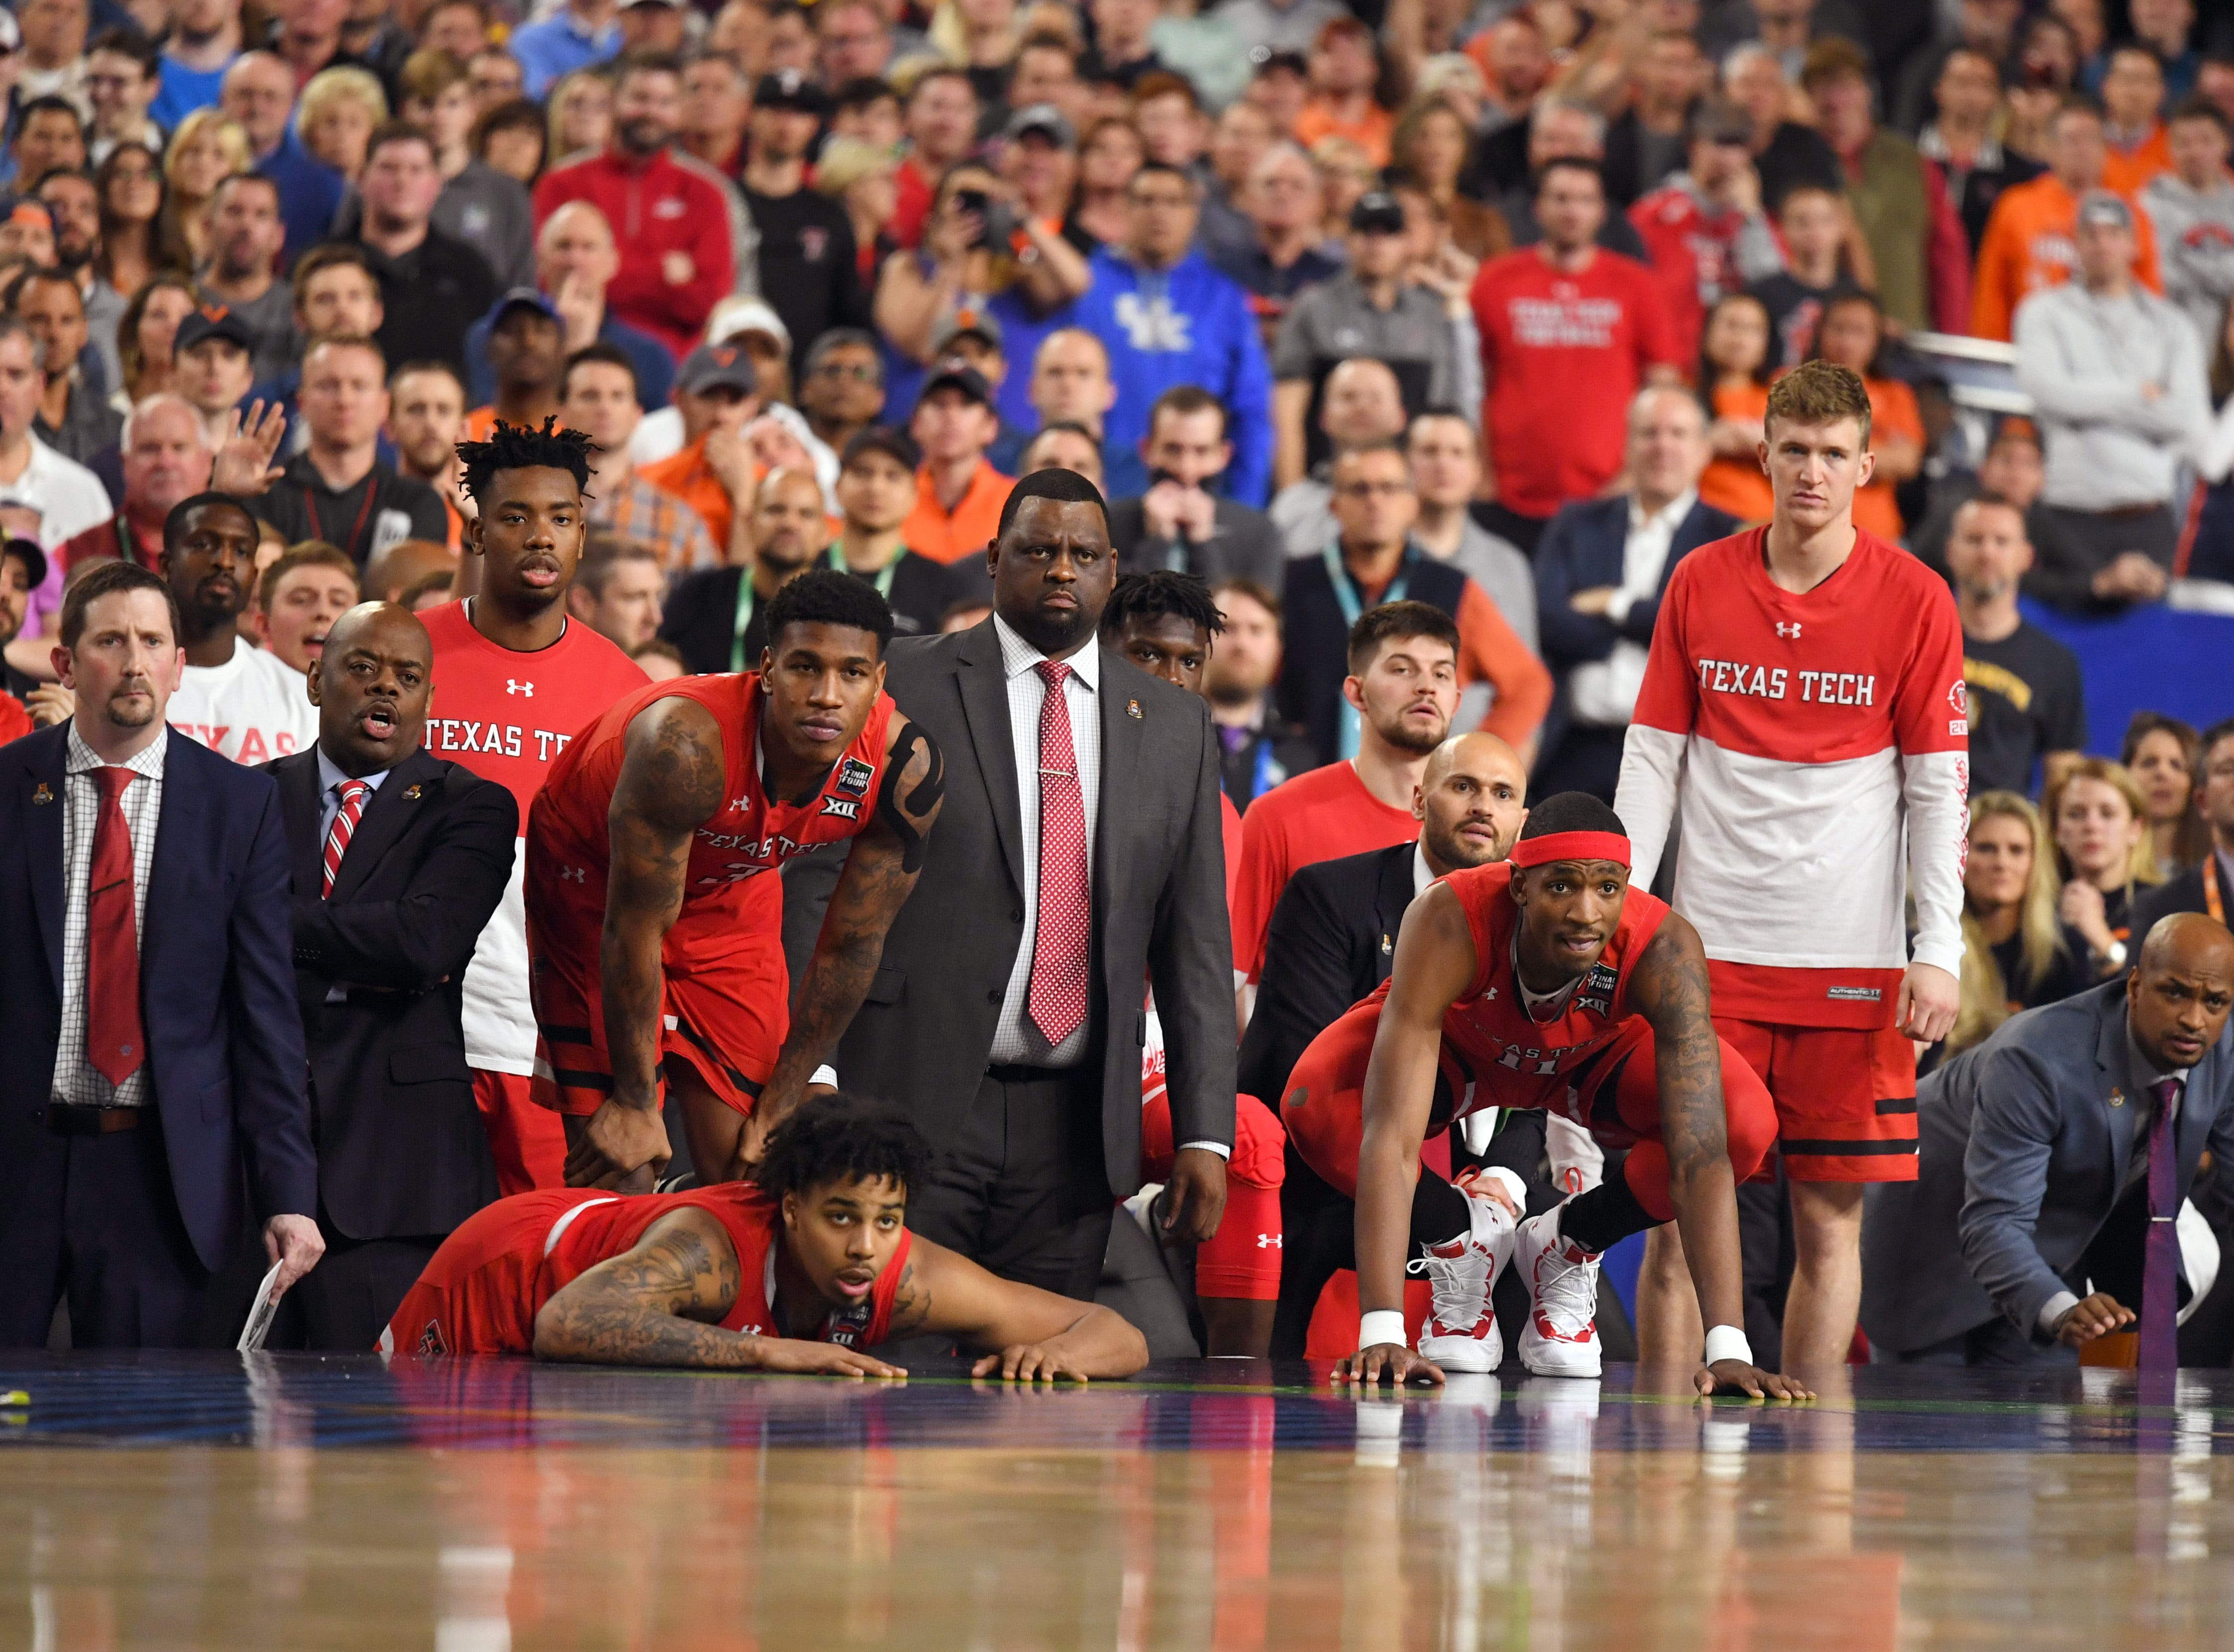 Apr 8, 2019; Minneapolis, MN, USA; Texas Tech Red Raiders bench watching from the sideline Virginia Cavaliers in the championship game of the 2019 men's Final Four at US Bank Stadium. Mandatory Credit: Robert Deutsch-USA TODAY Sports